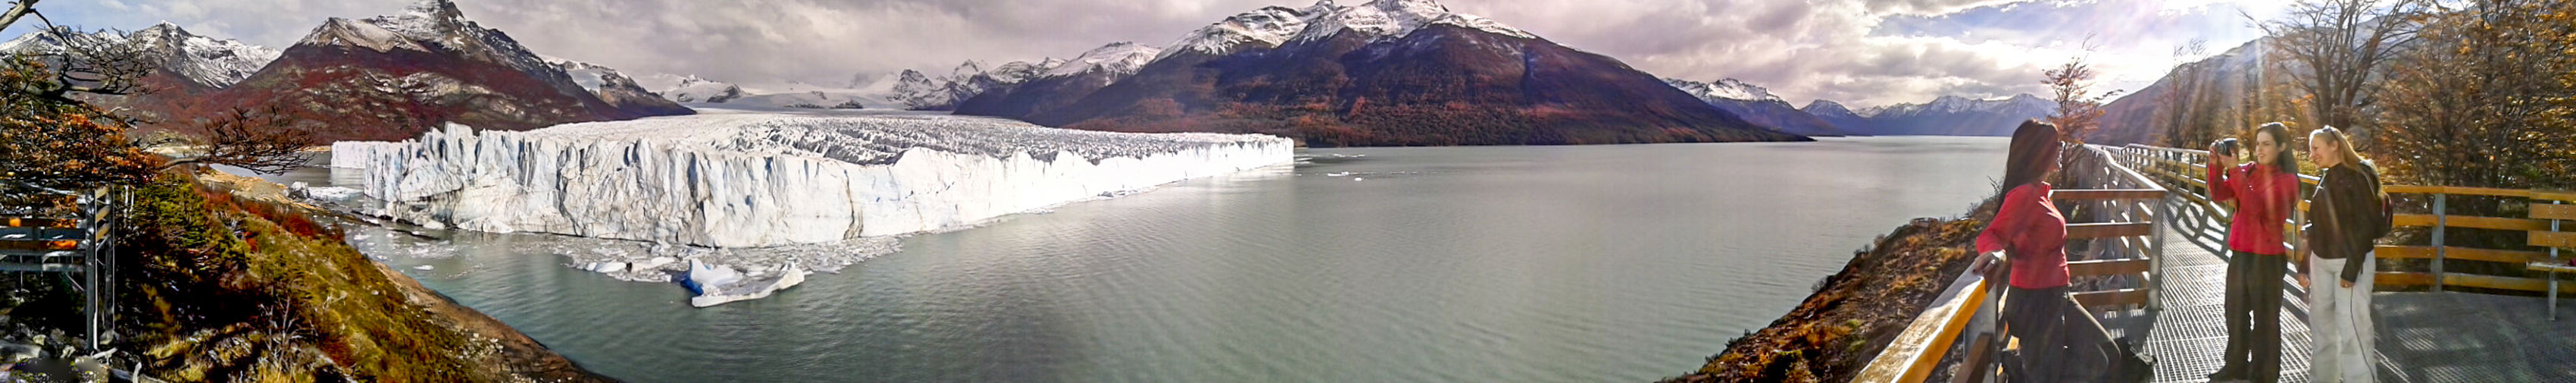 Glaciar Perito Moreno Calafate Viajes  The Traveler - 2019 EyeEm Awards The Mobile Photographer - 2019 EyeEm Awards Panoramic Water Mountain Nature Environment Landscape Scenics - Nature Sky Travel Destinations Ice Reflection Outdoors Glacier Cold Temperature No People Mountain Peak Cloud - Sky Snow Mountain Range Lagoon